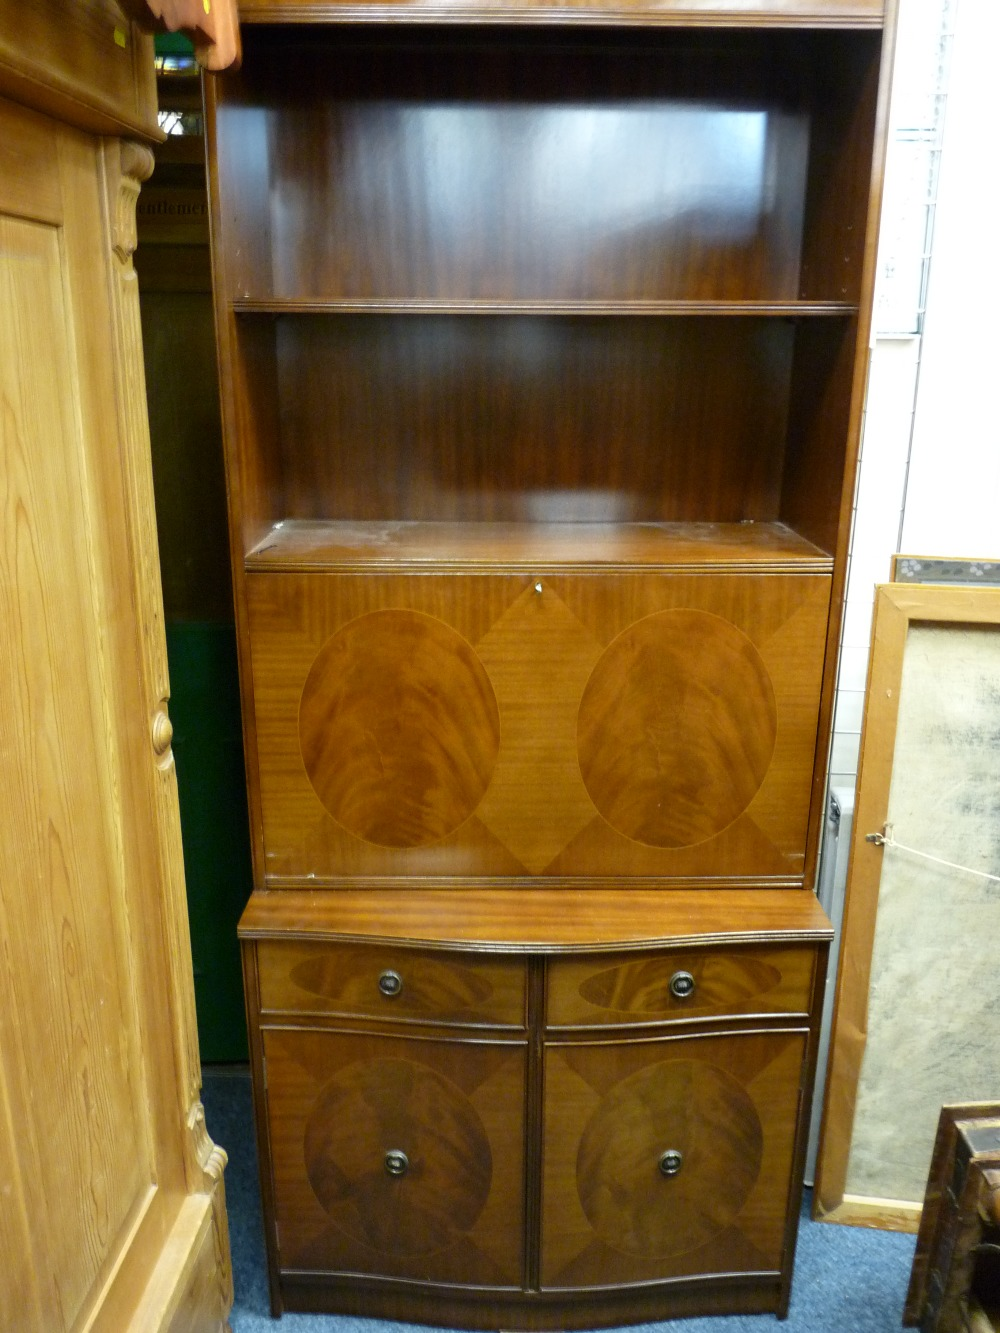 Lot 90 - POLISHED WOOD SIDEBOARD BY 'STRONGBOW FURNITURE' with six drawers and twin central cupboards, a